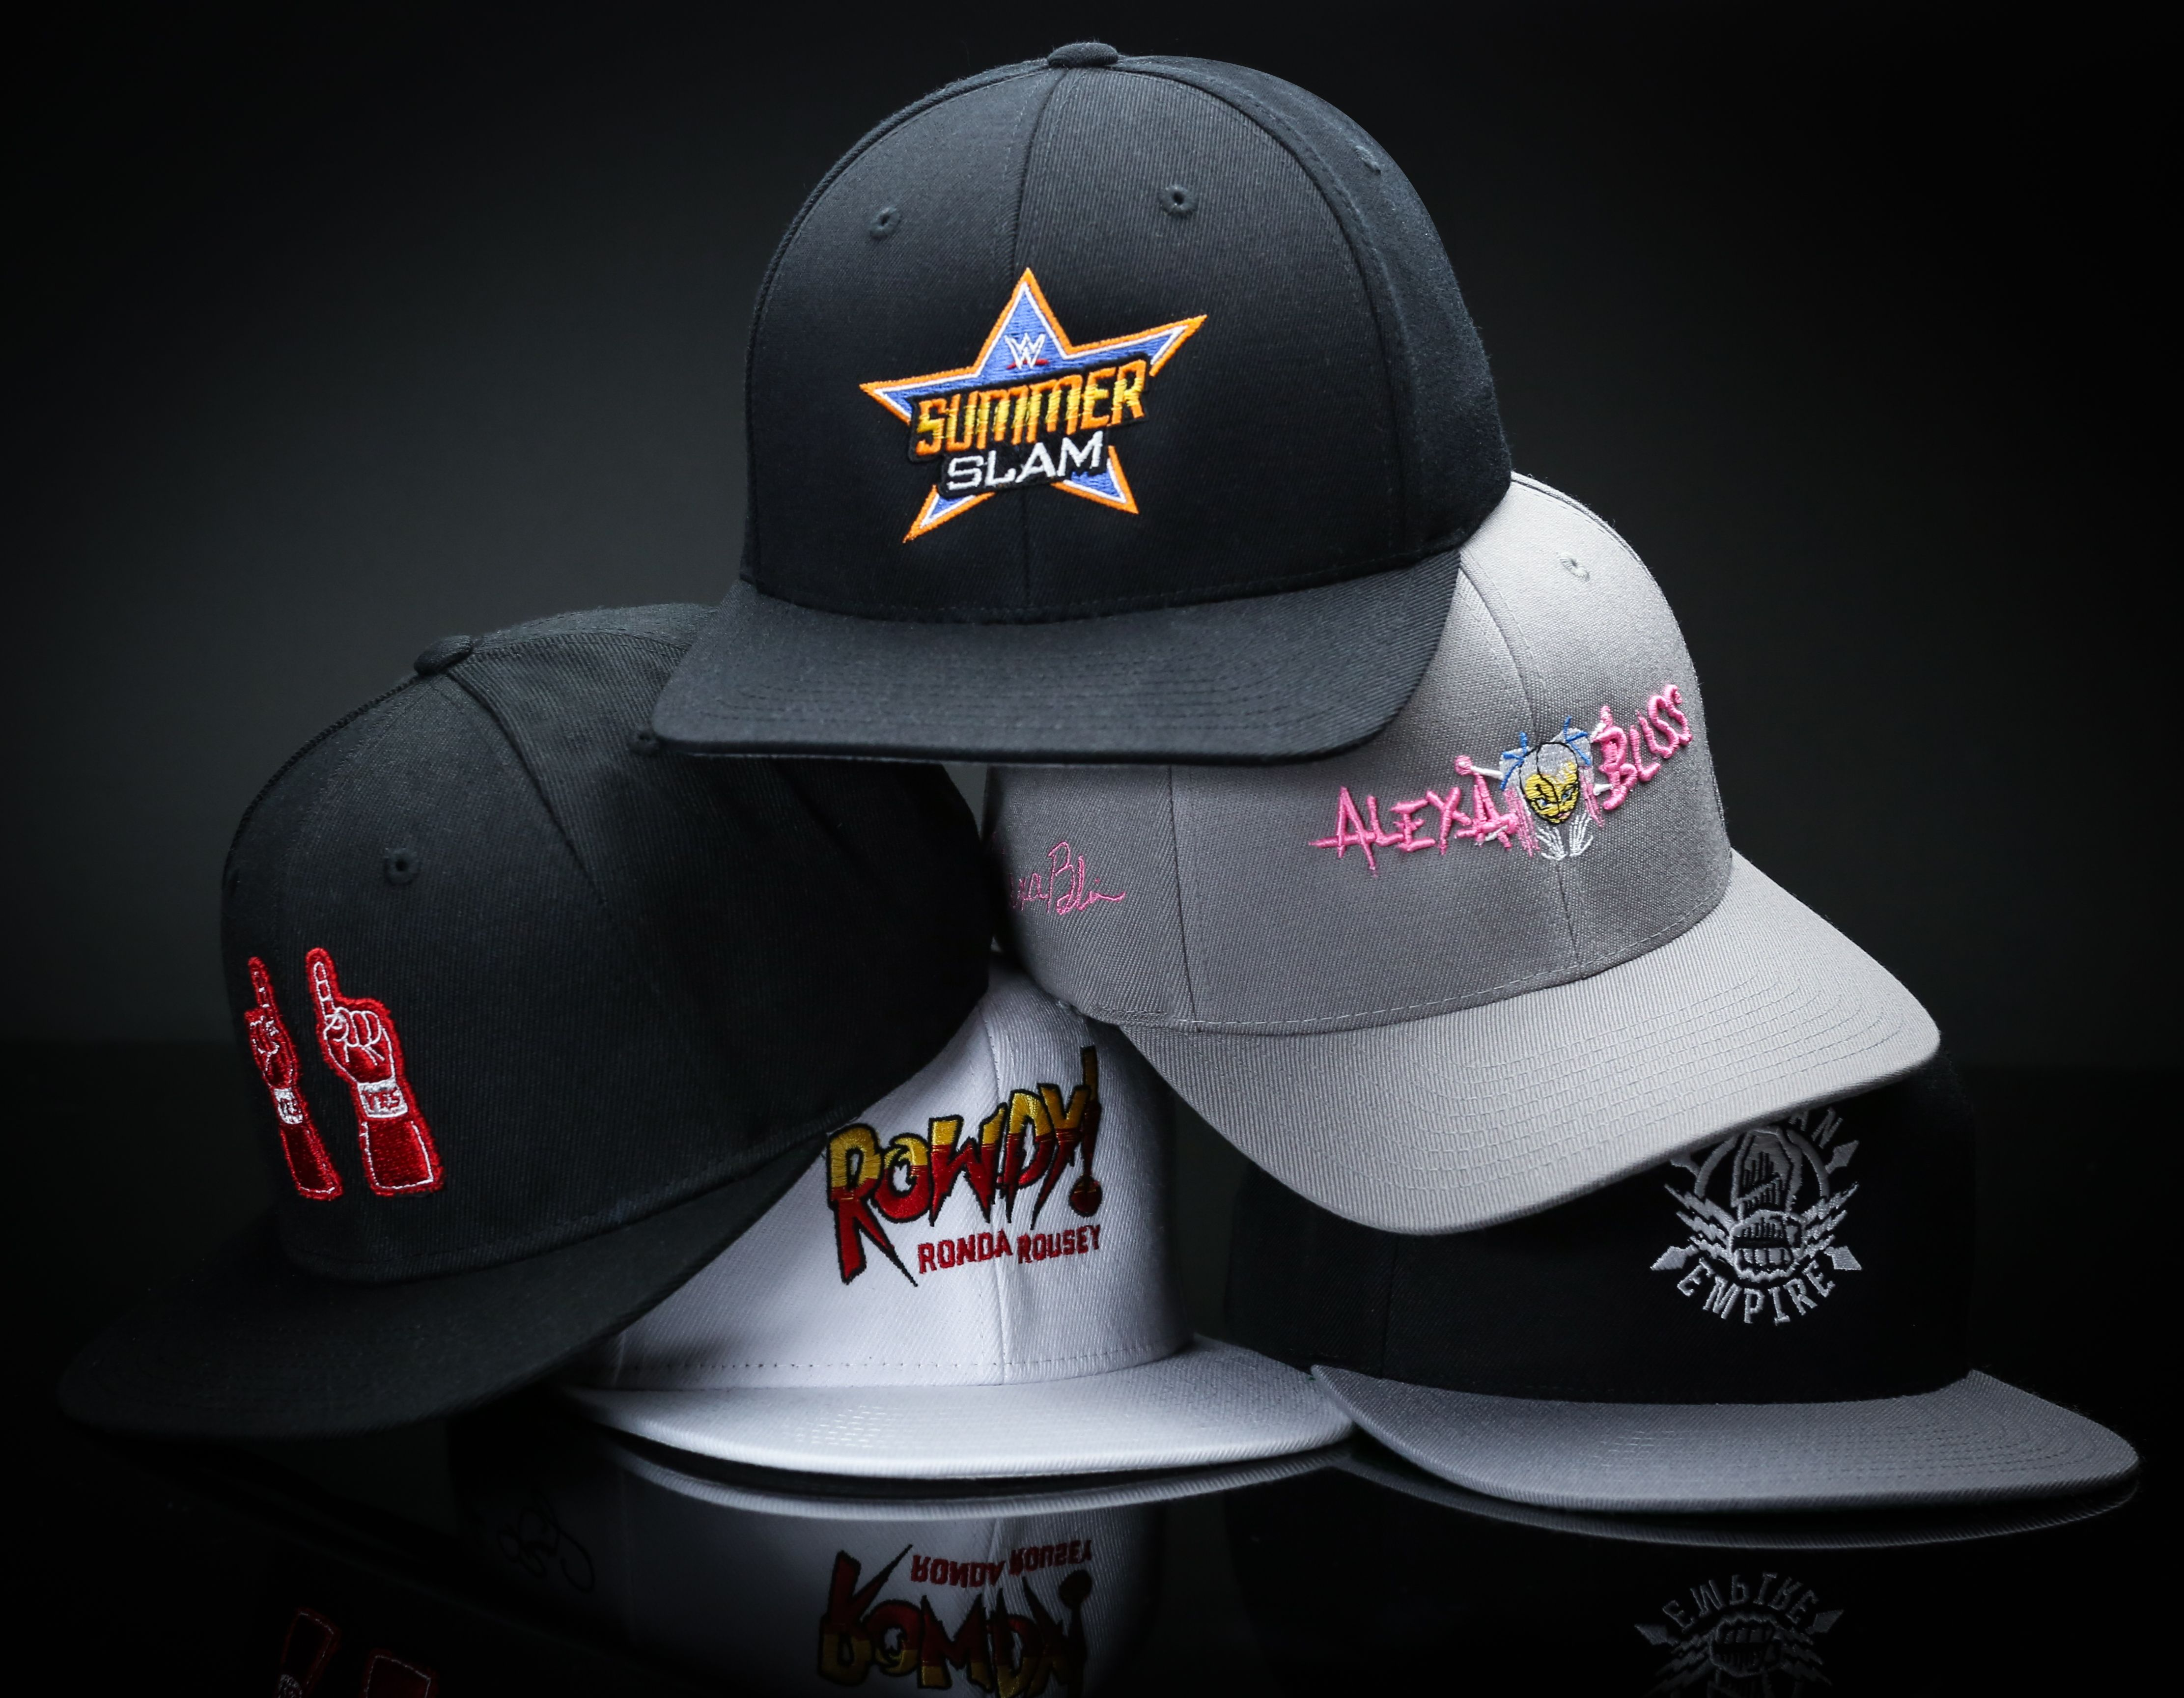 a384e4ed31dfd Personalize your love for WWE with custom hats by Lids.